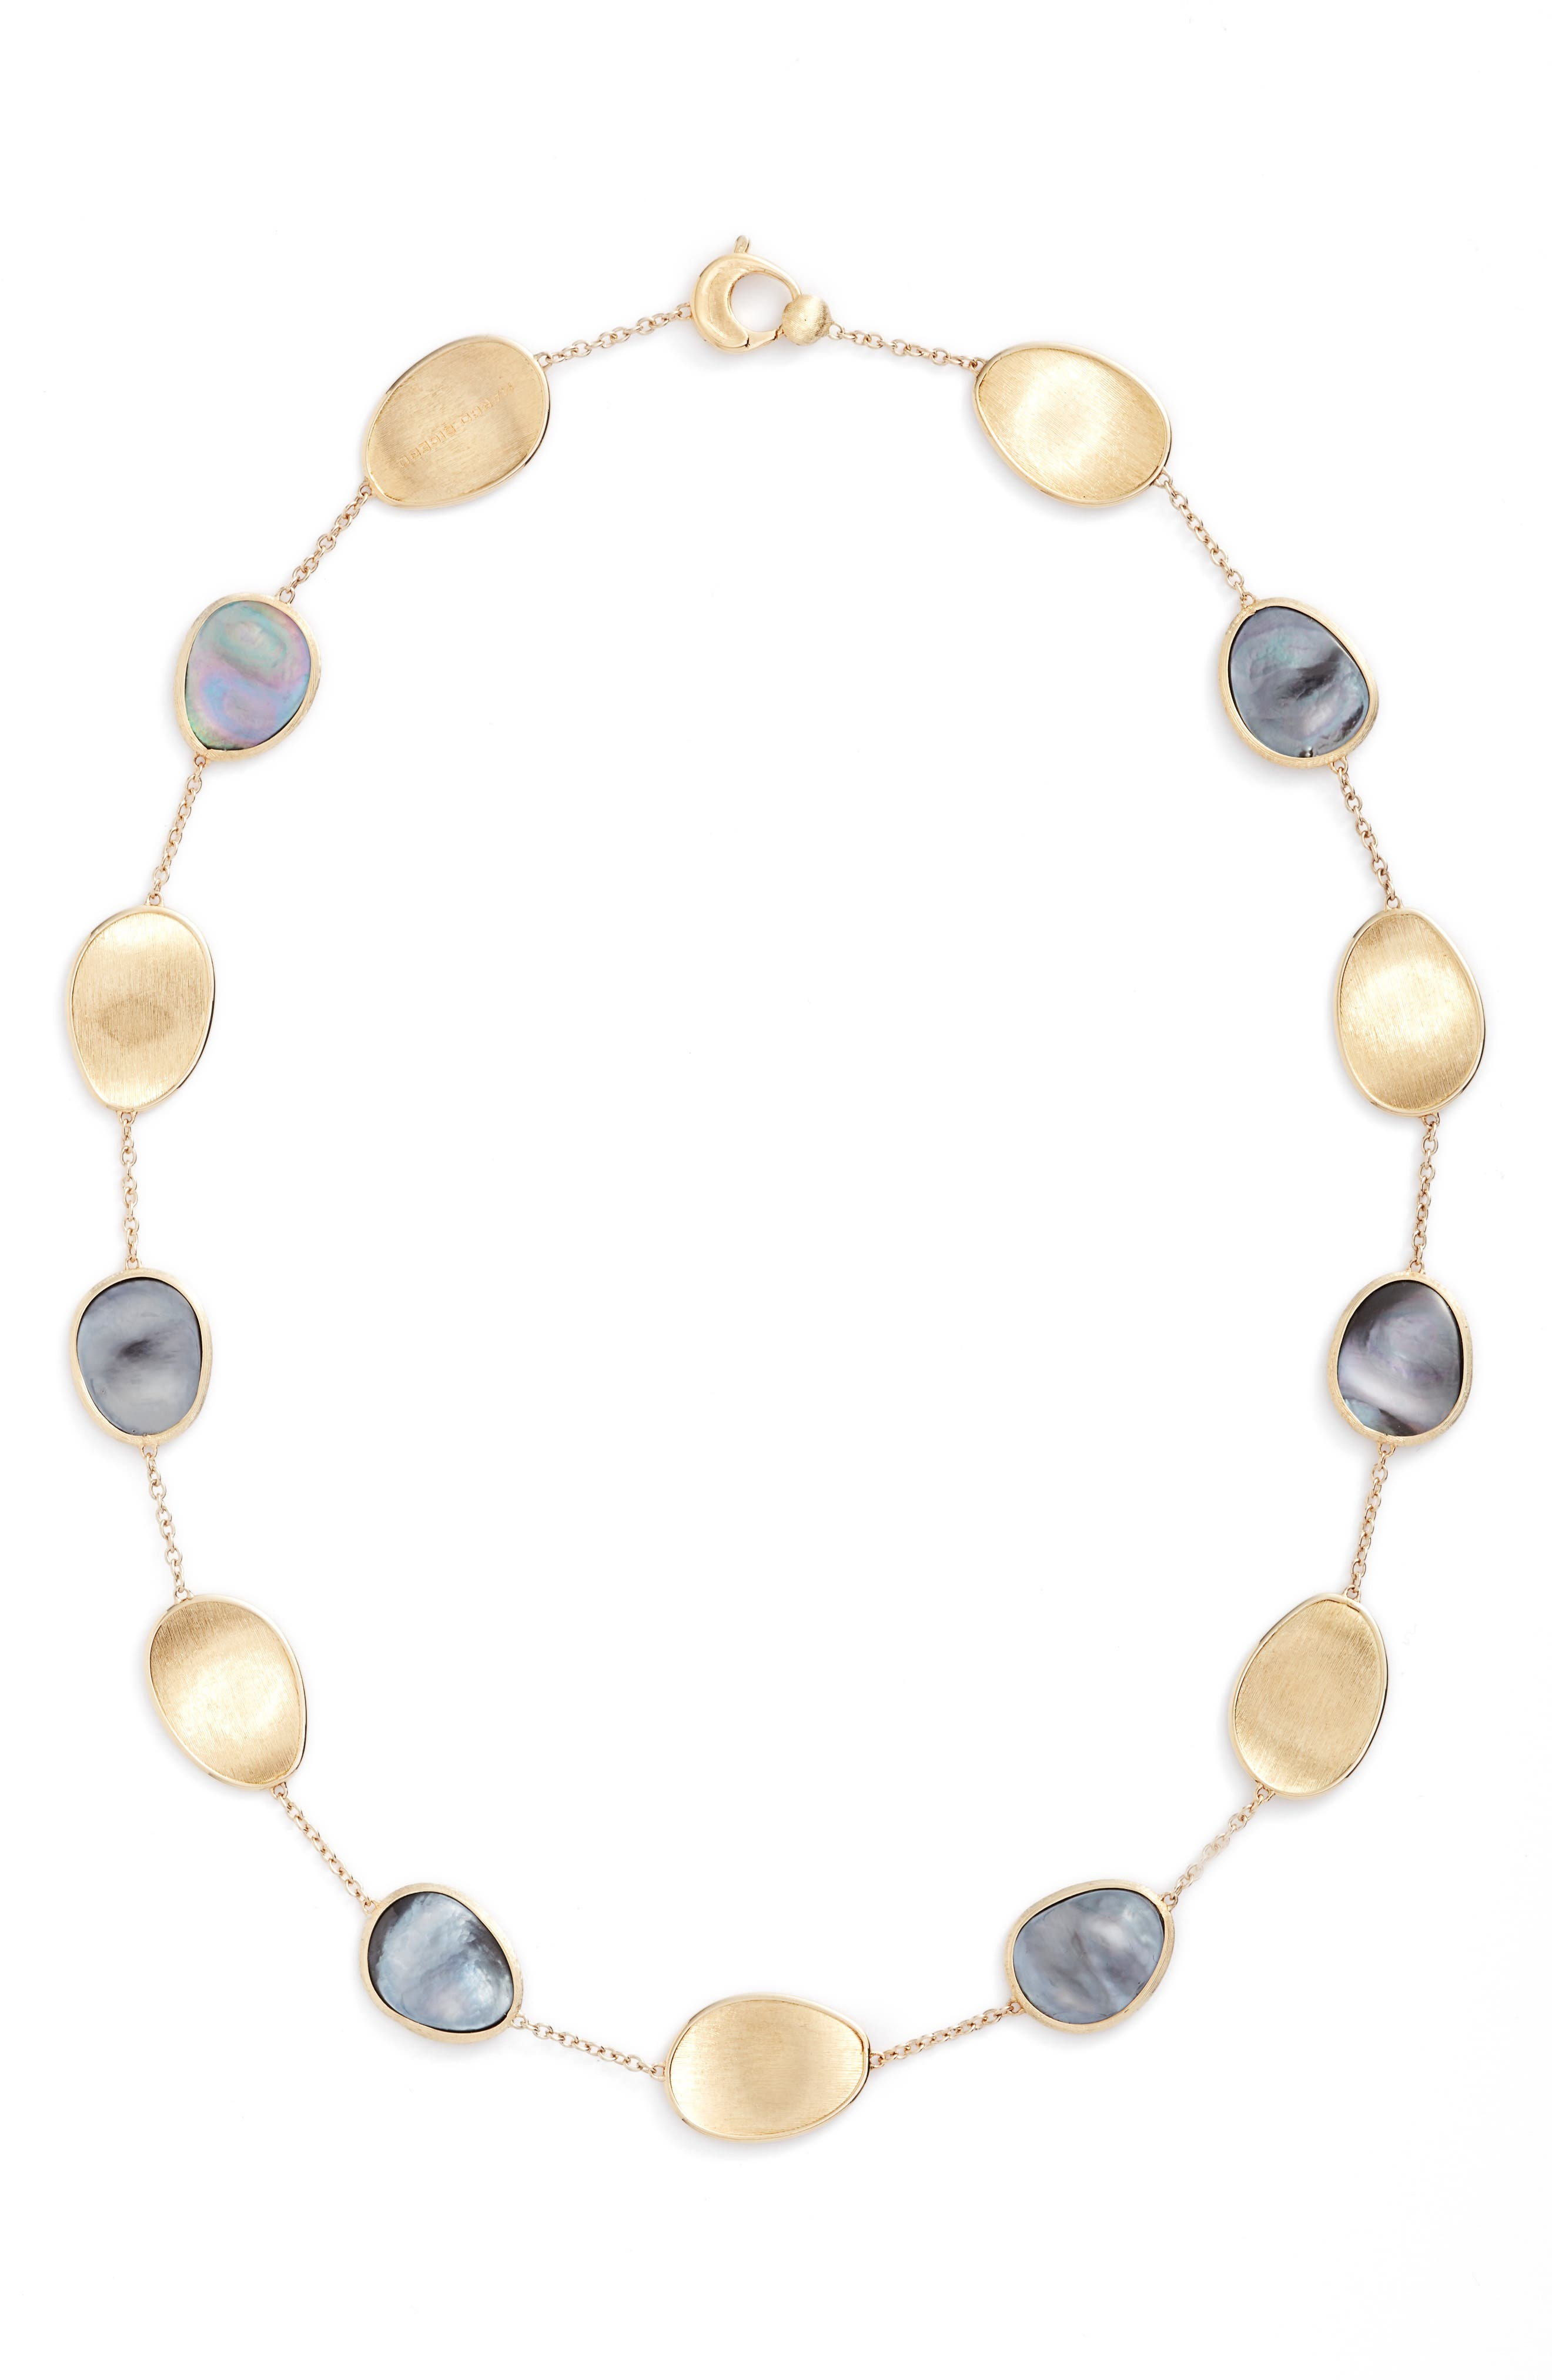 Main Image - Marco Bicego Lunaria Mother of Pearl Collar Necklace